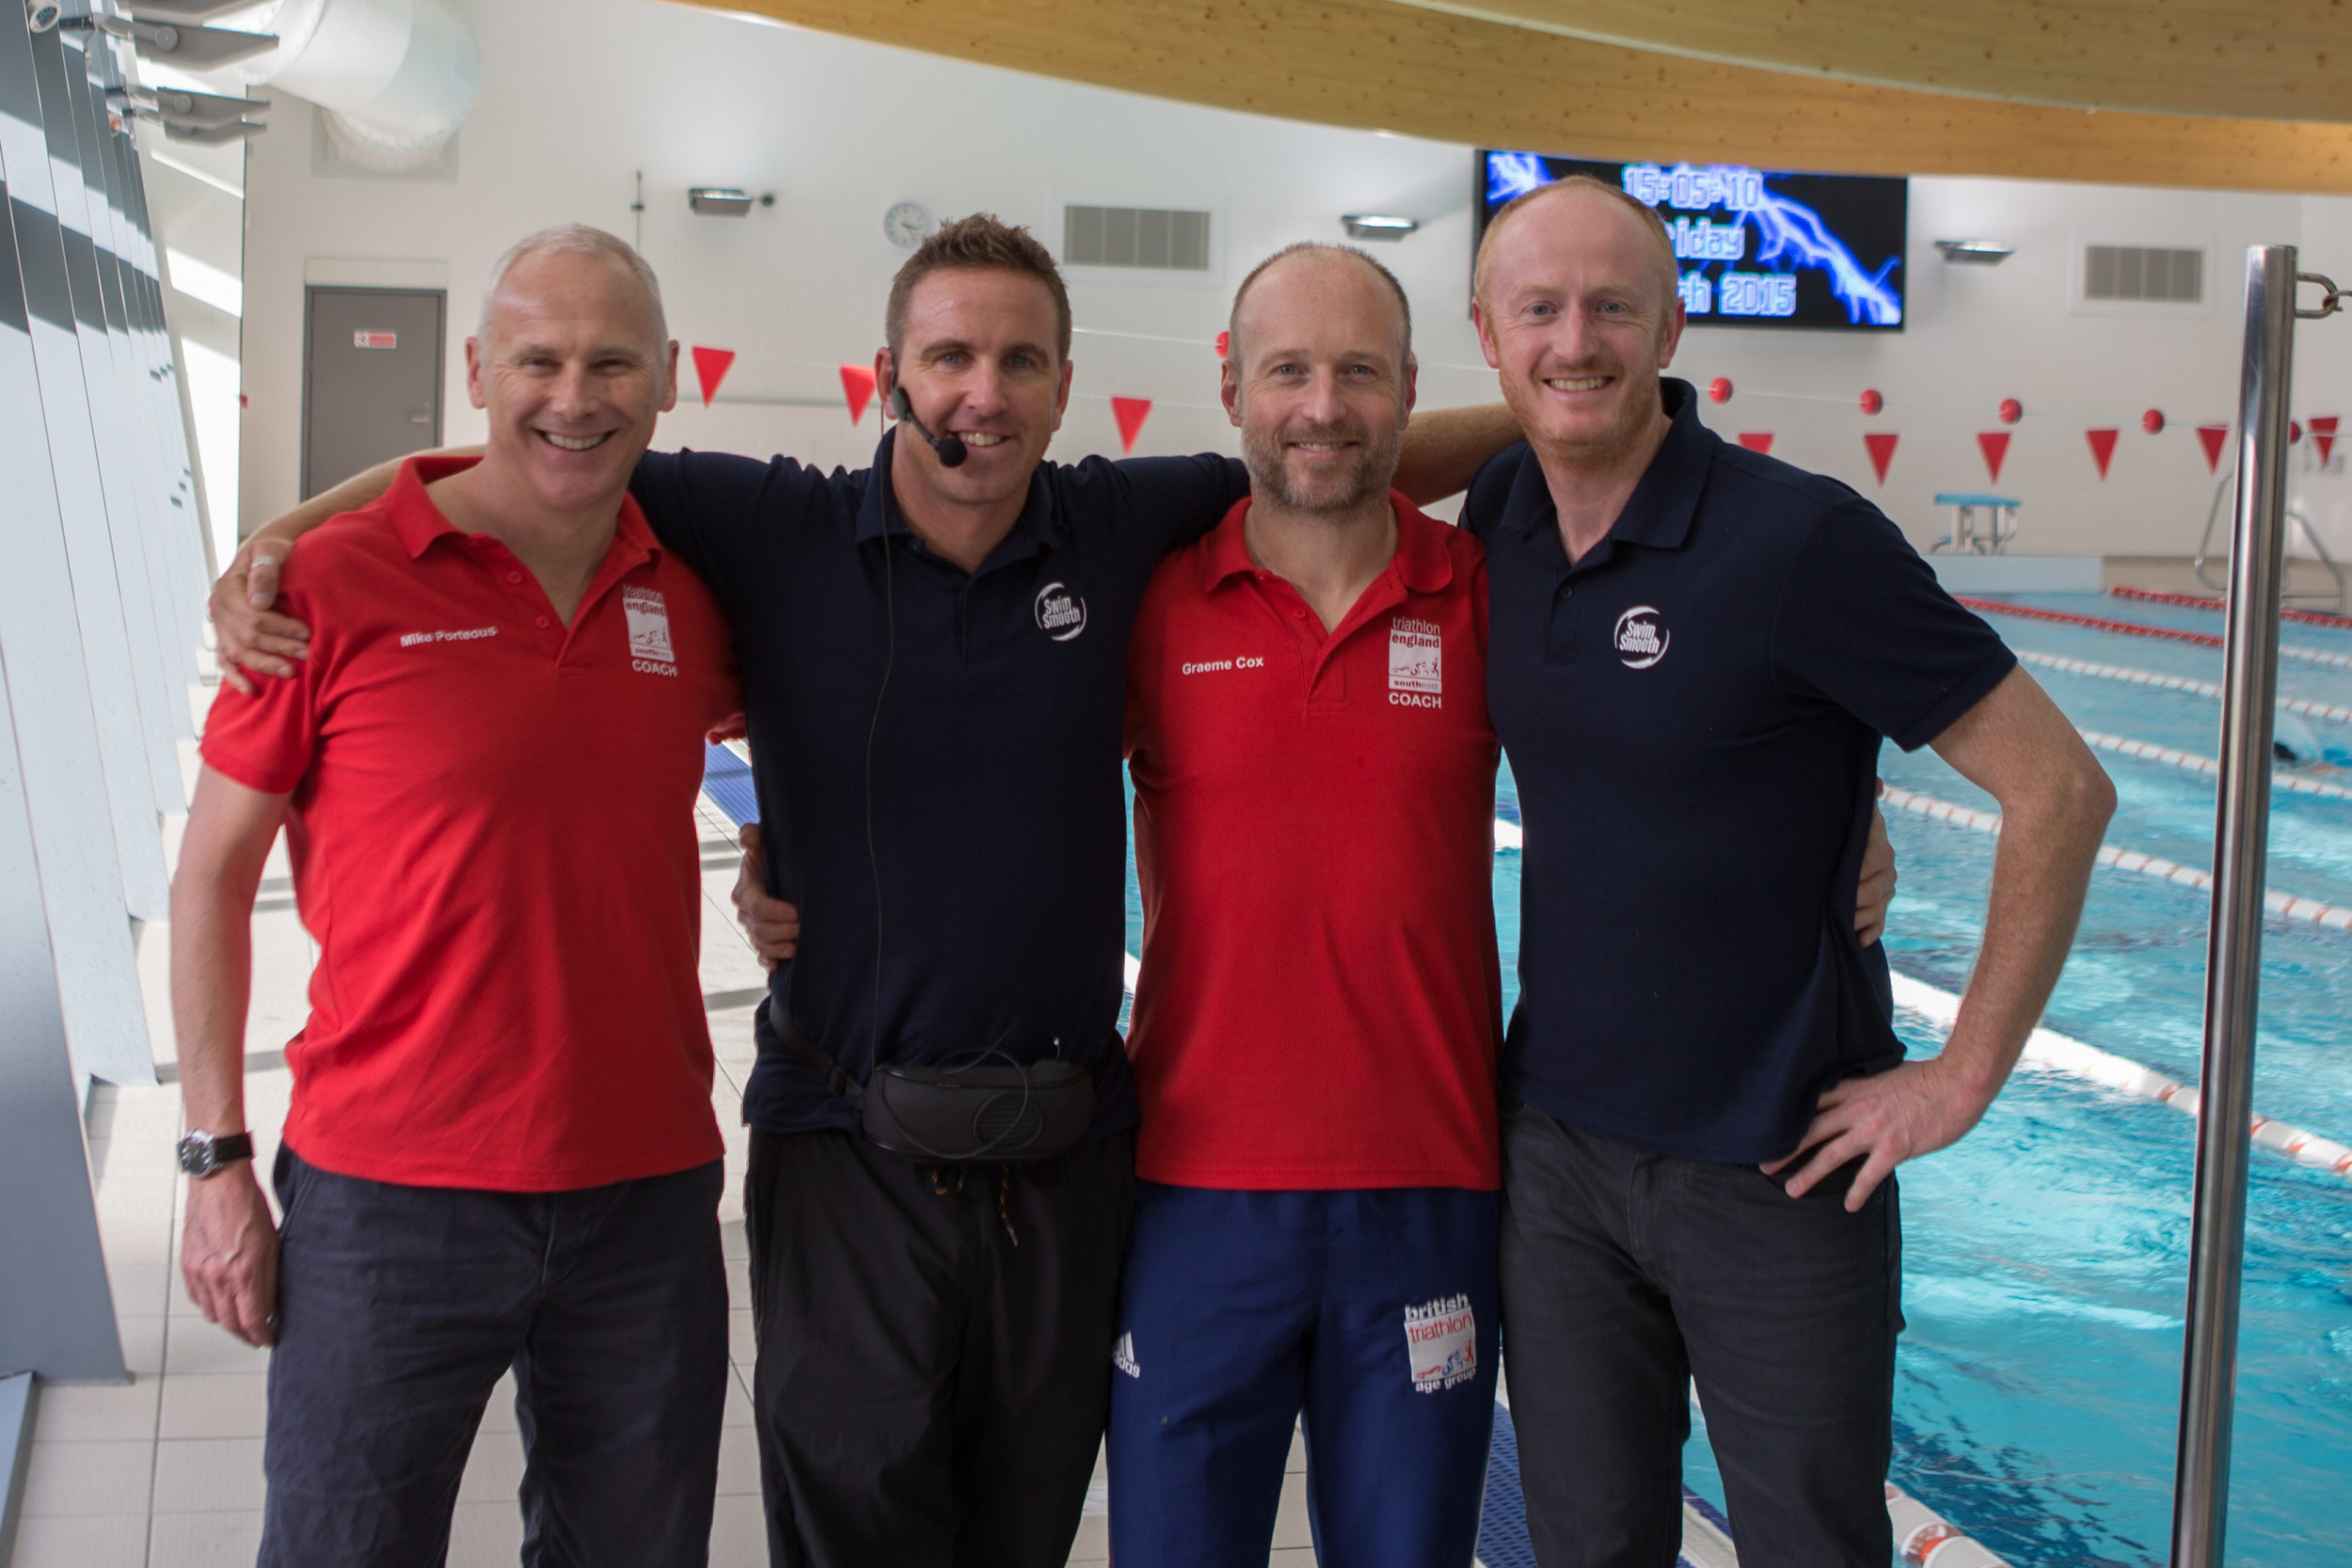 In the blue, Swim Smooth founders Paul Newsome and Adam Young and in the red Bri Tri coaches Graeme and me